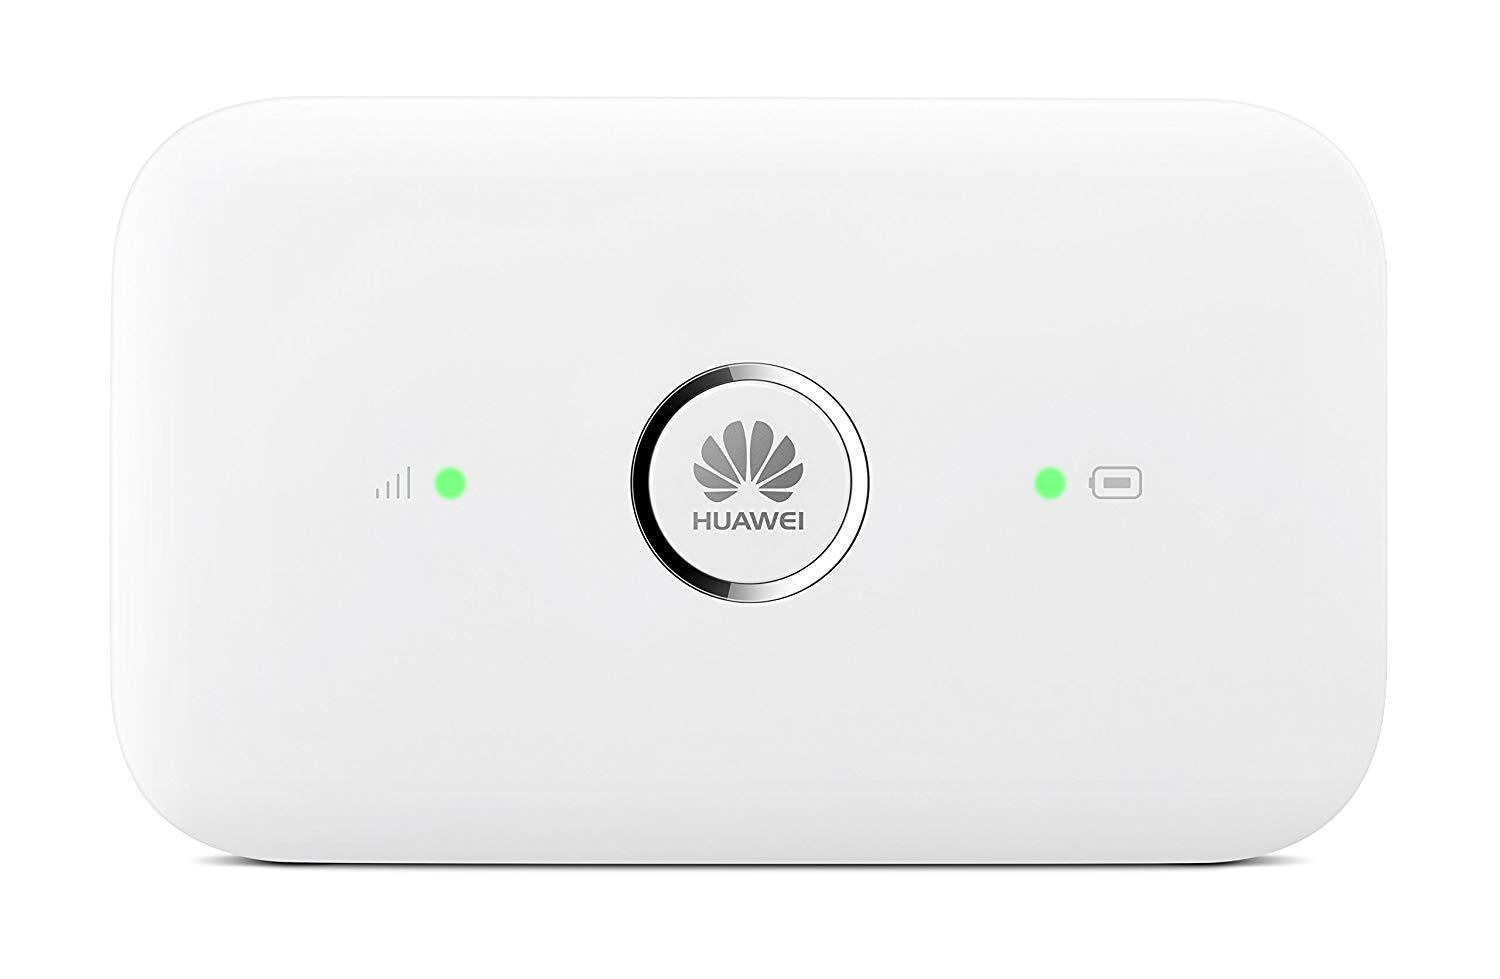 Huawei E5573Cs-322, 4G Low Cost Travel Hotspot, Roams on all world networks